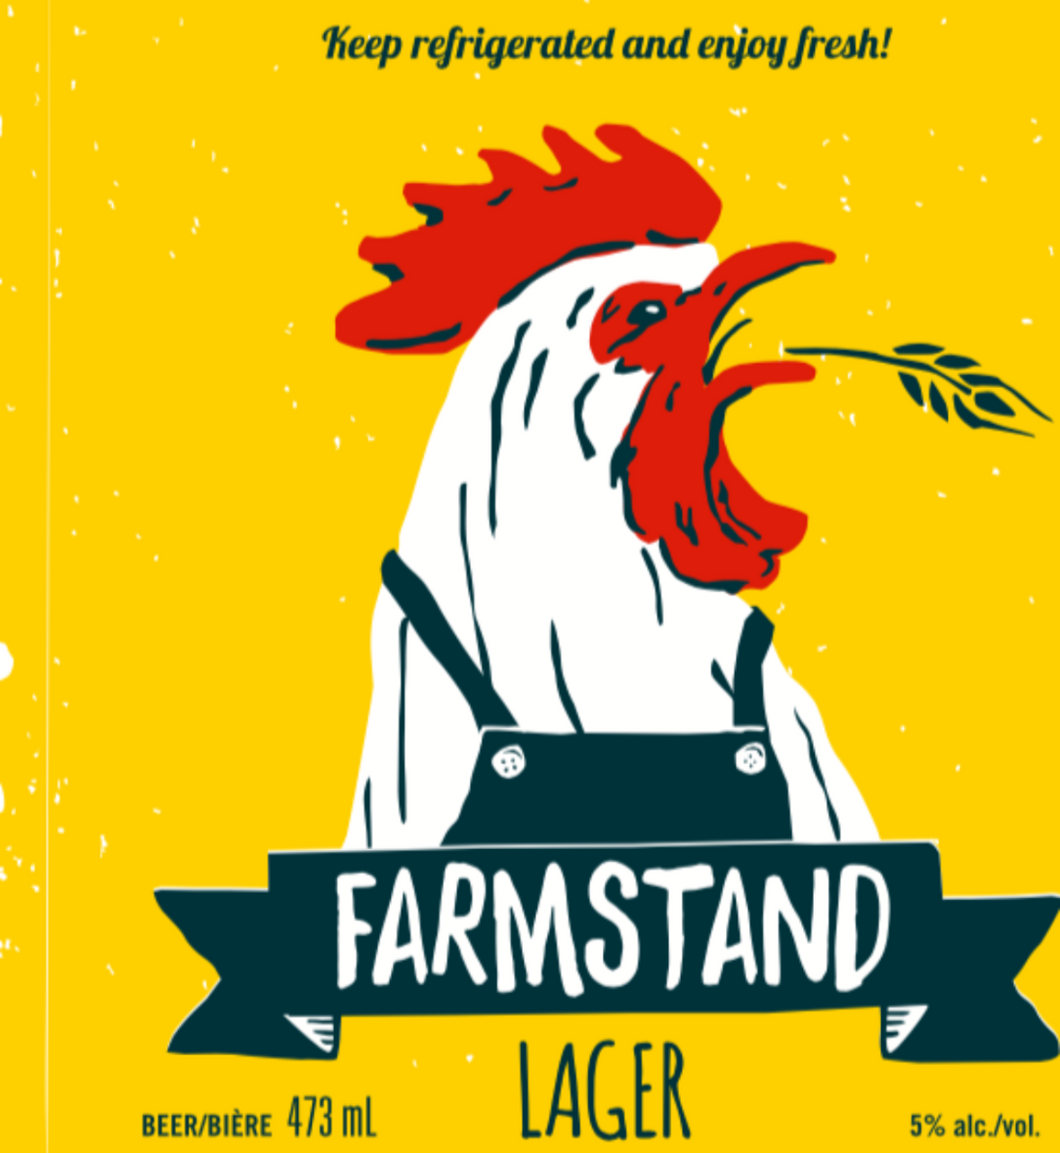 William Street Beer - Farmstand Lager